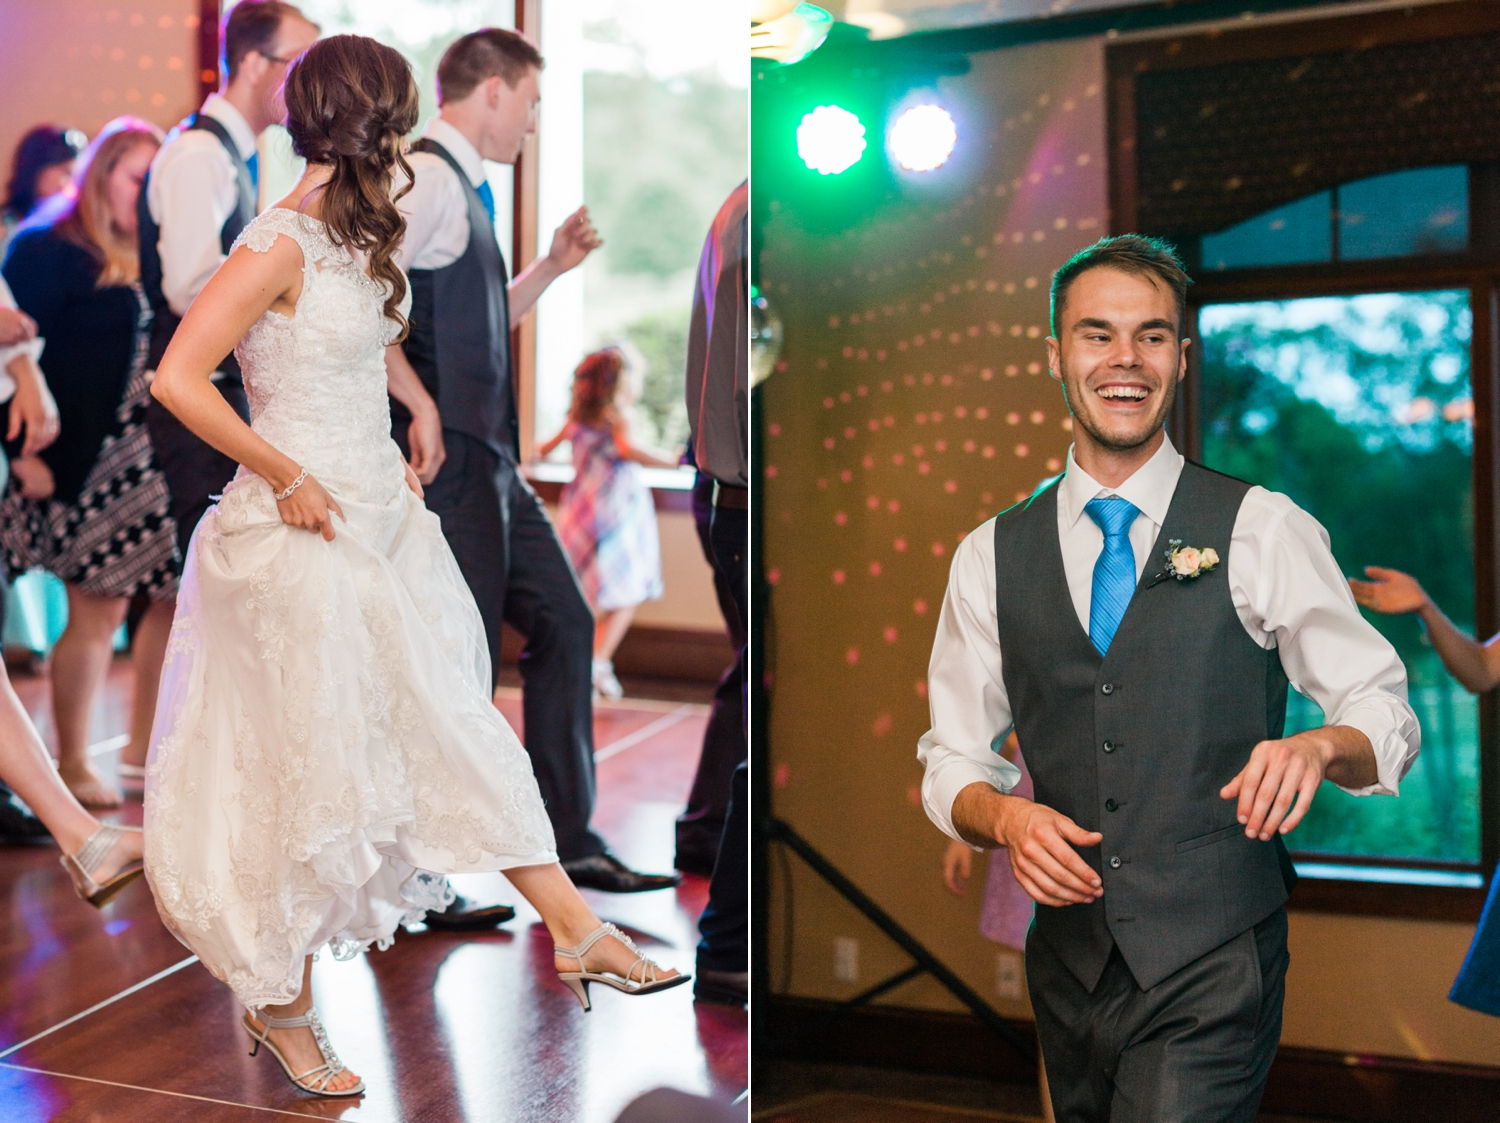 NCR_Country_Club_Kettering_Ohio_Wedding_Photography_Chloe_Luka_Photography_7226.jpg